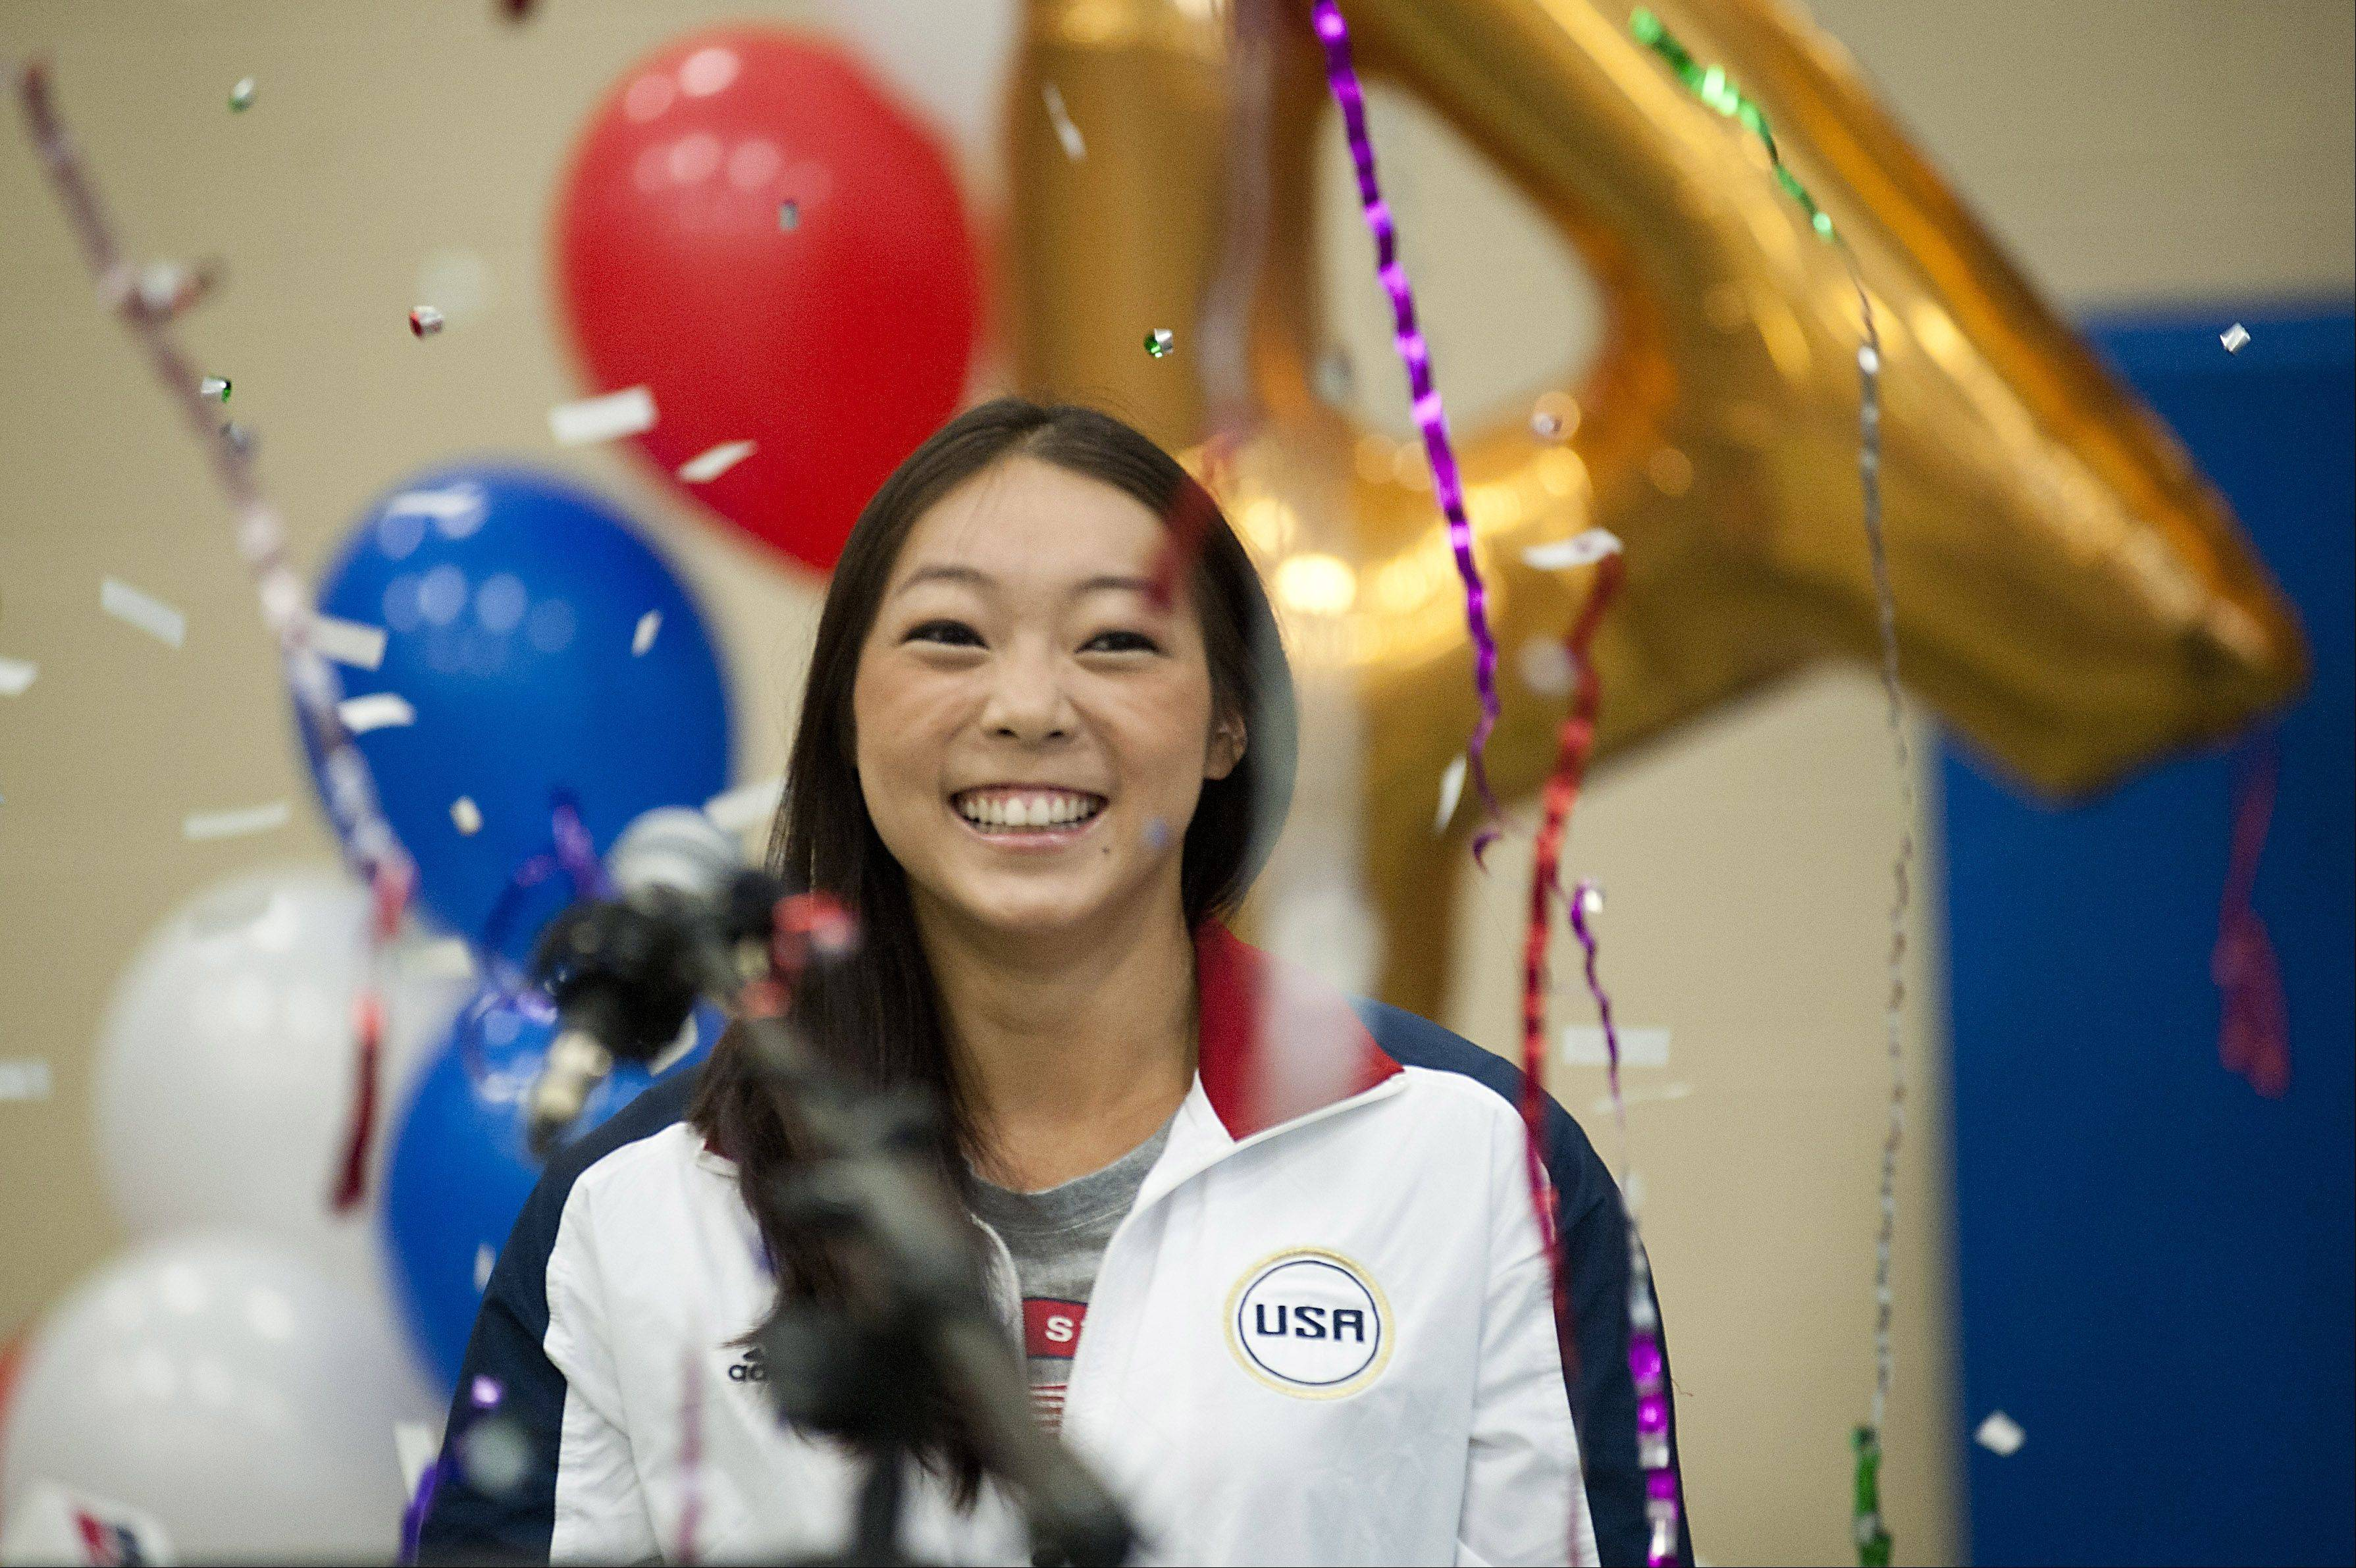 Aurora gymnast Anna Li was showered with cheers and confetti in her hometown before she left for the Olympic Games in London. Li, a Waubonsie Valley graduate, was chosen as an alternate member of the U.S. Women's Gymnastics Team, but a neck injury has forced her out of competition.